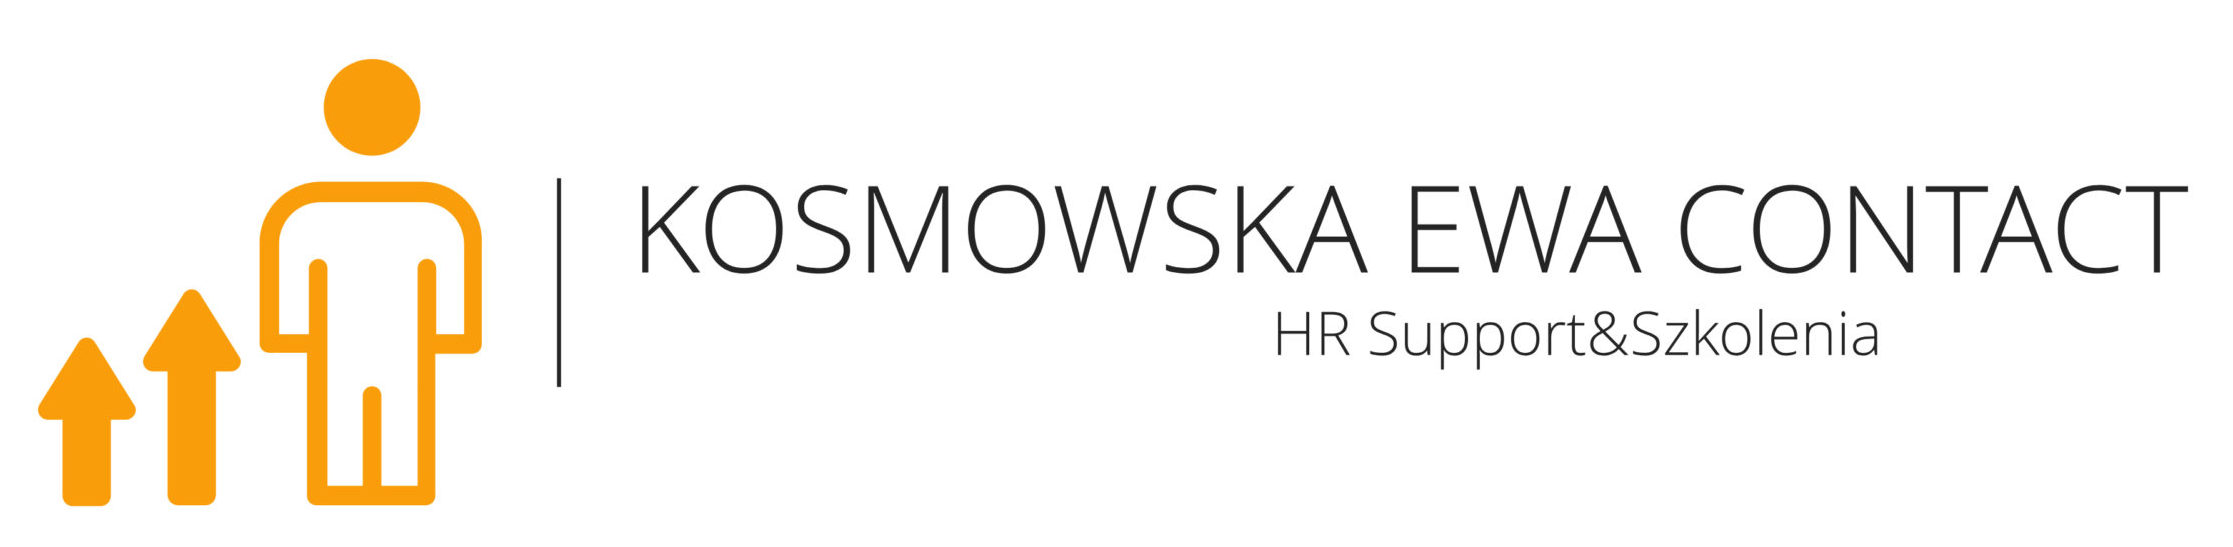 HR Business Support&Szkolenia